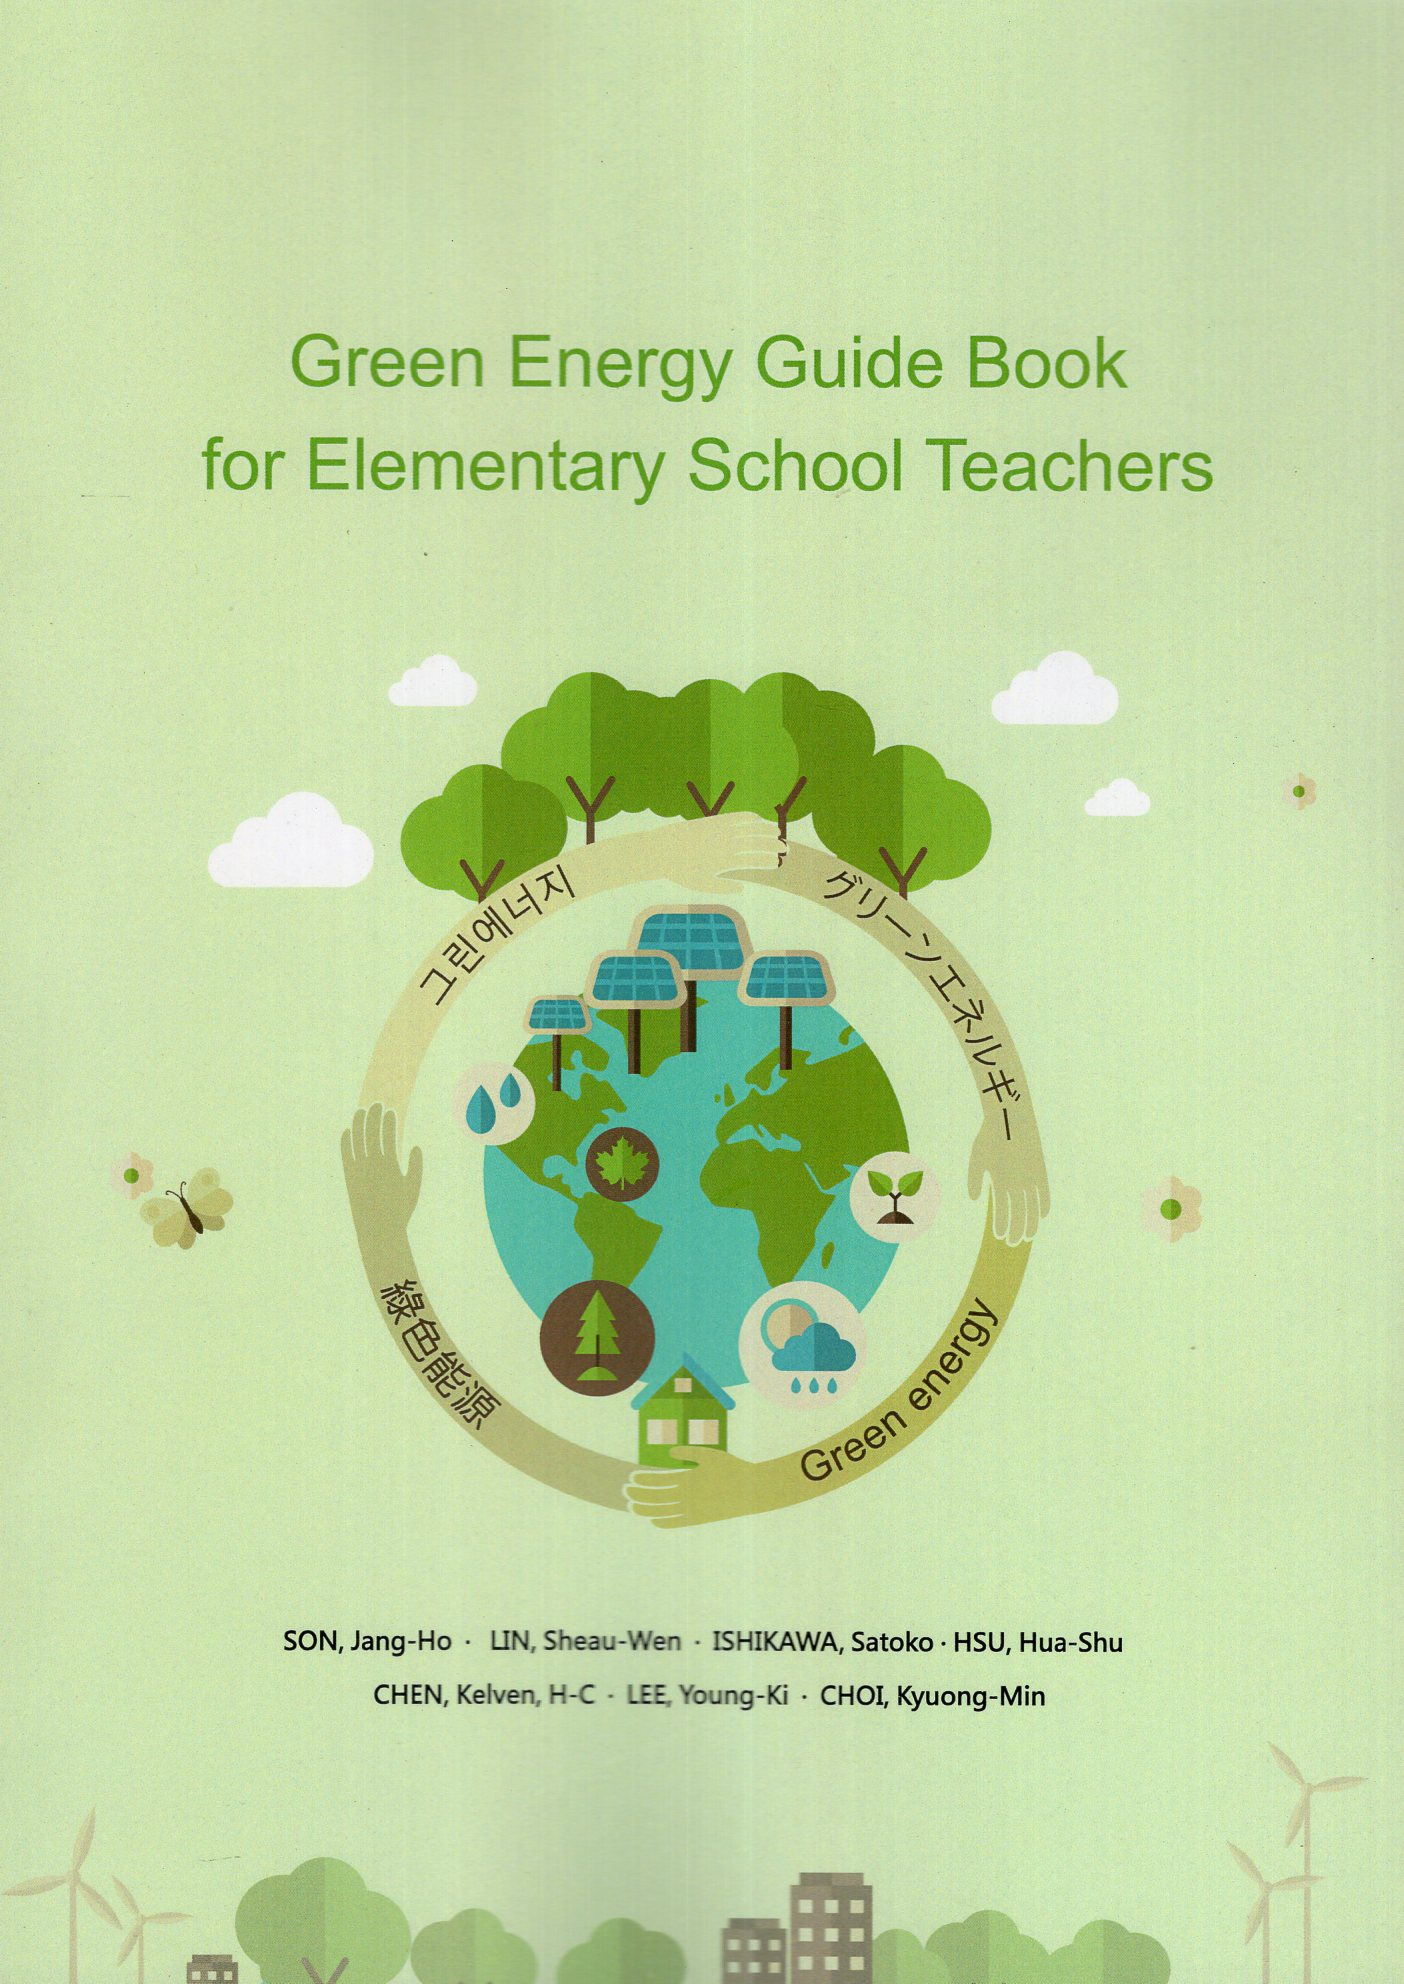 Green Energy Guide Book for Elementary School Teachers